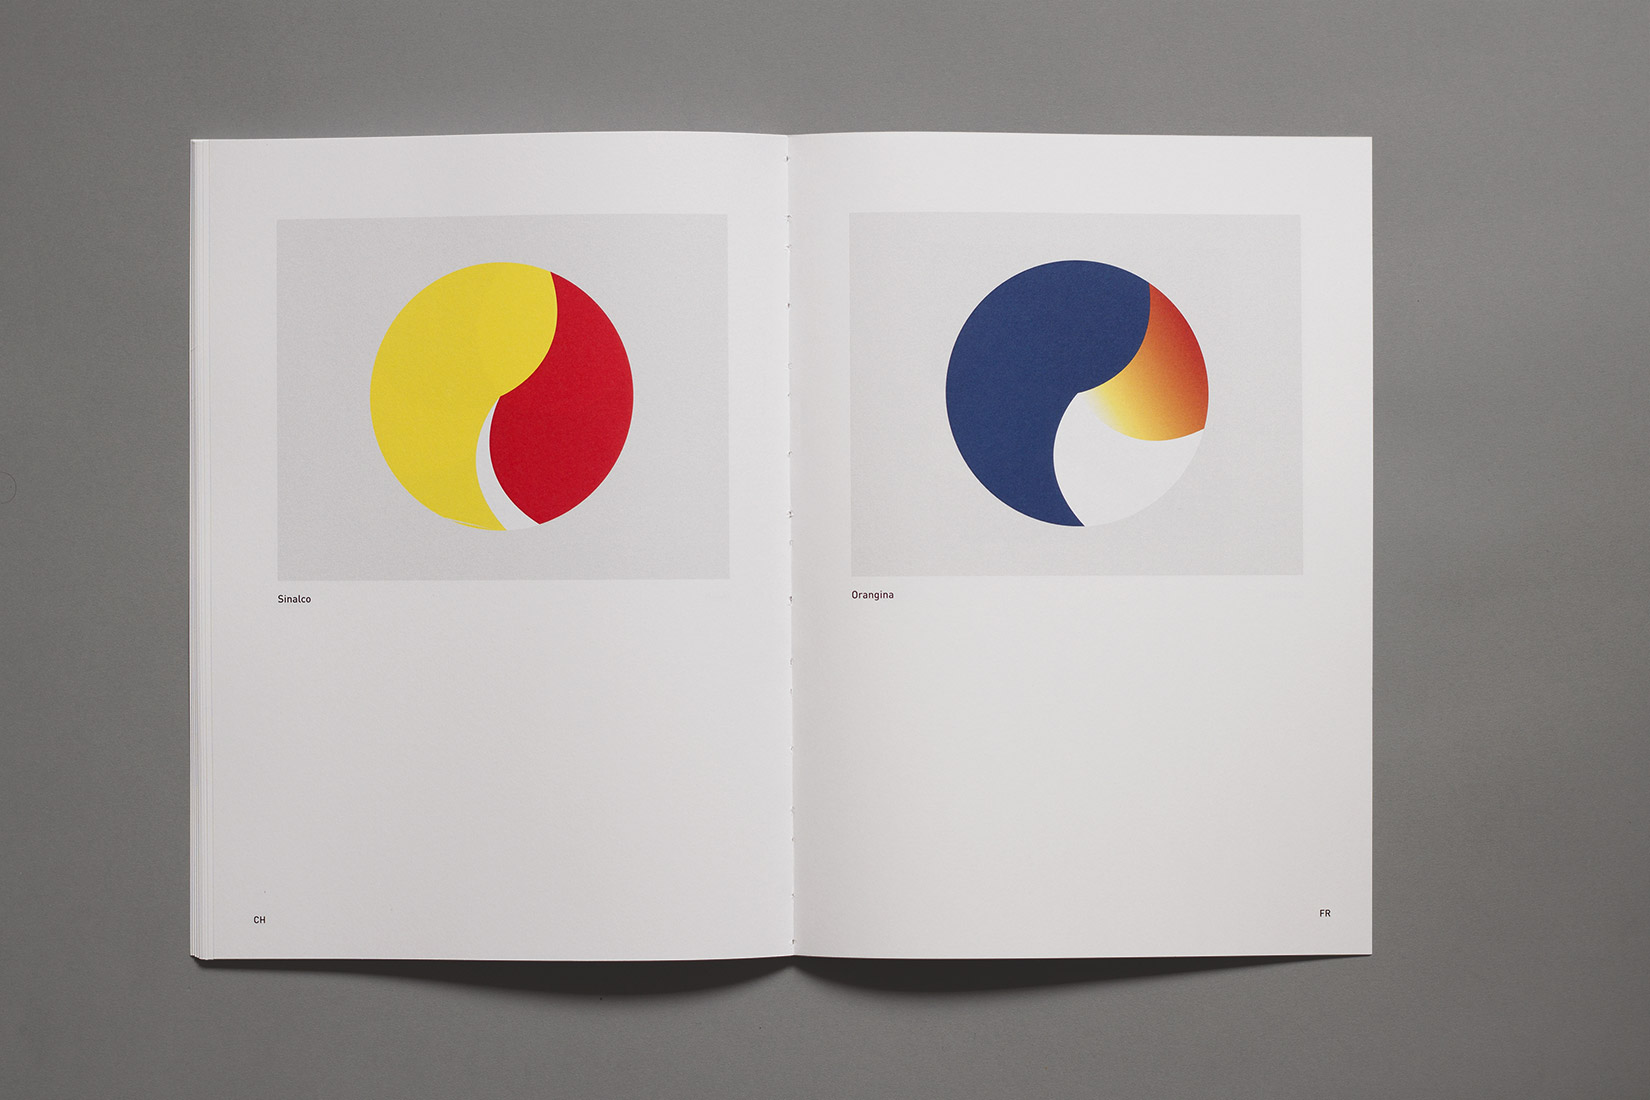 Graphisme Suisse, France, comparaison graphique, boissons, Sinalco, Orangina, cercles, surface, proportion de couleurs